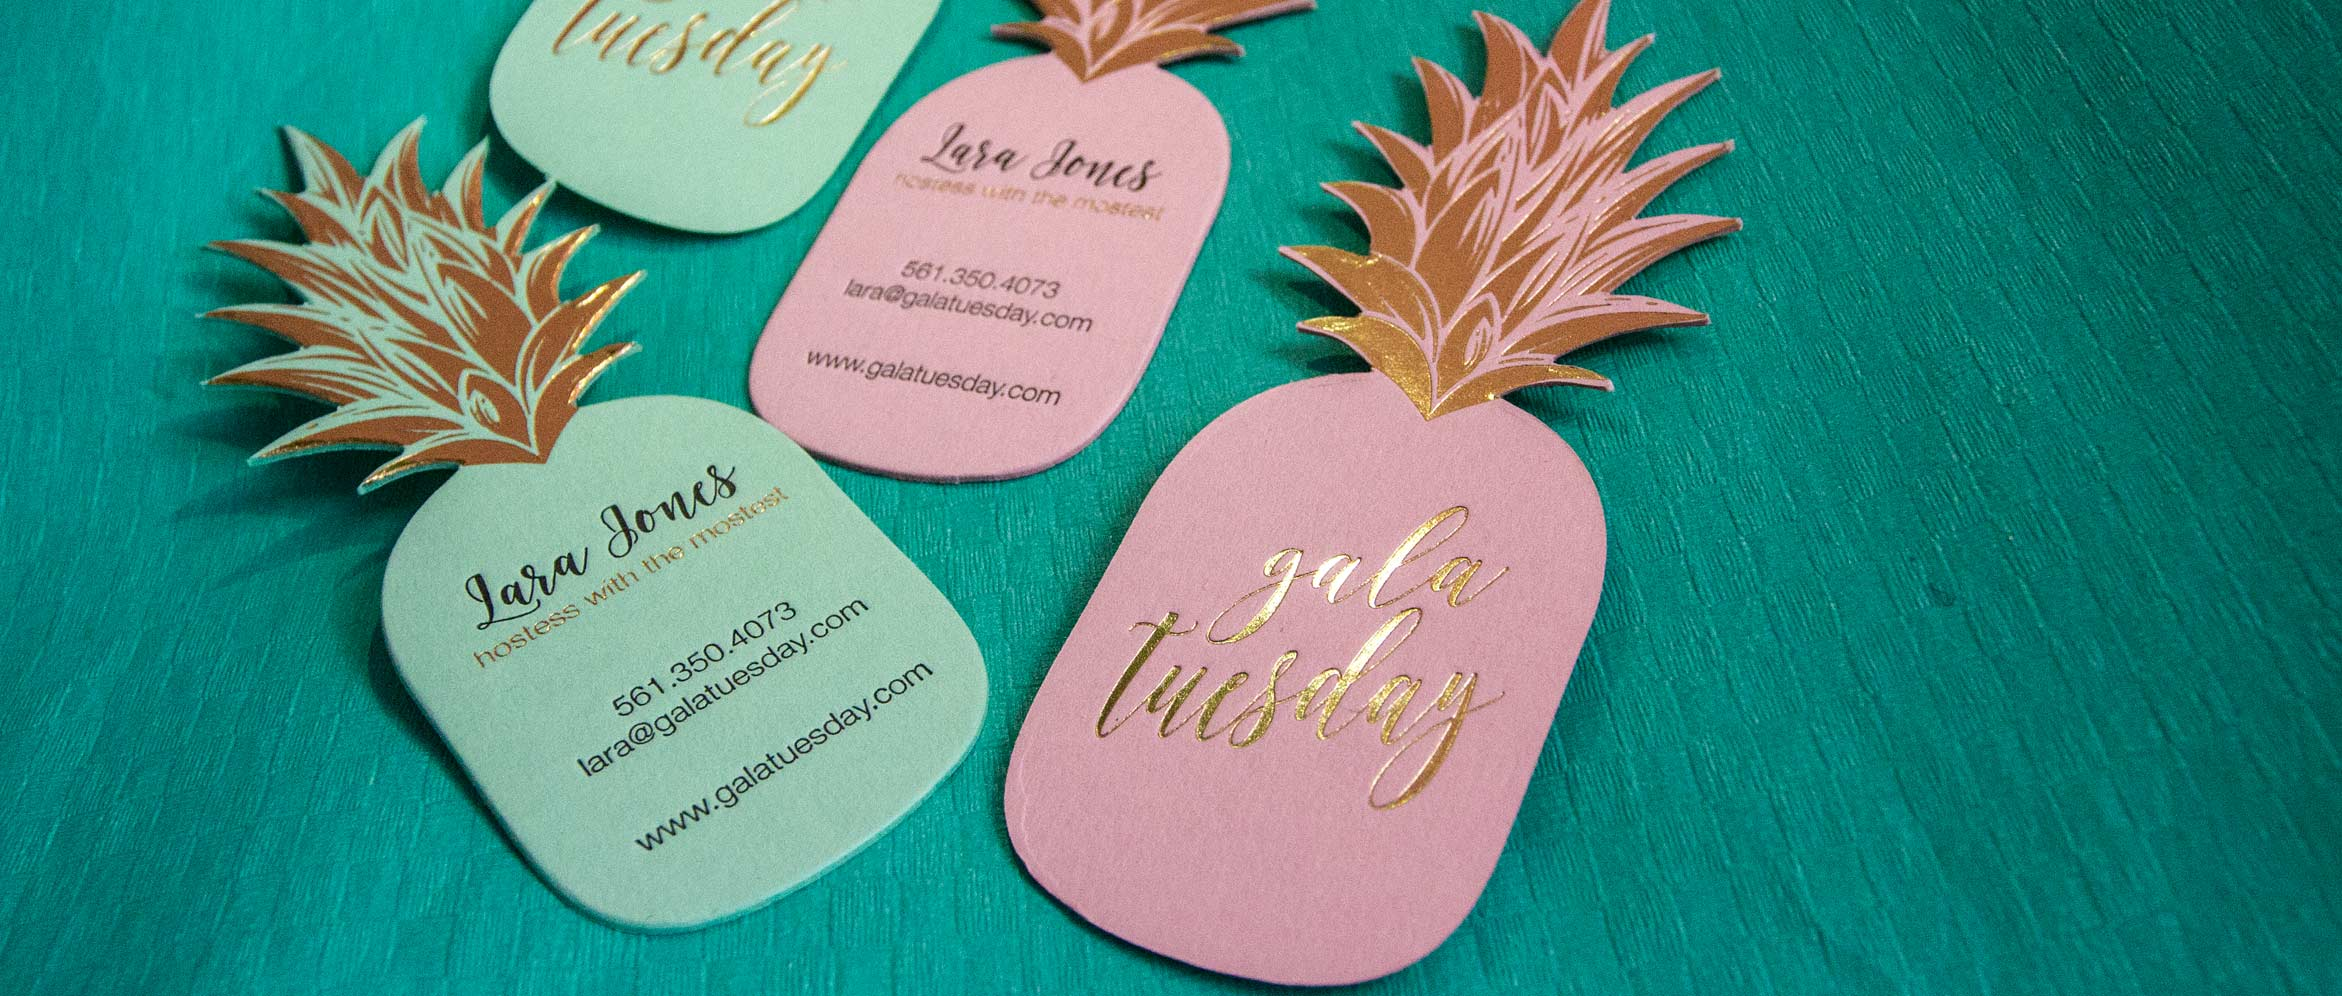 Pineapple shaped business cards